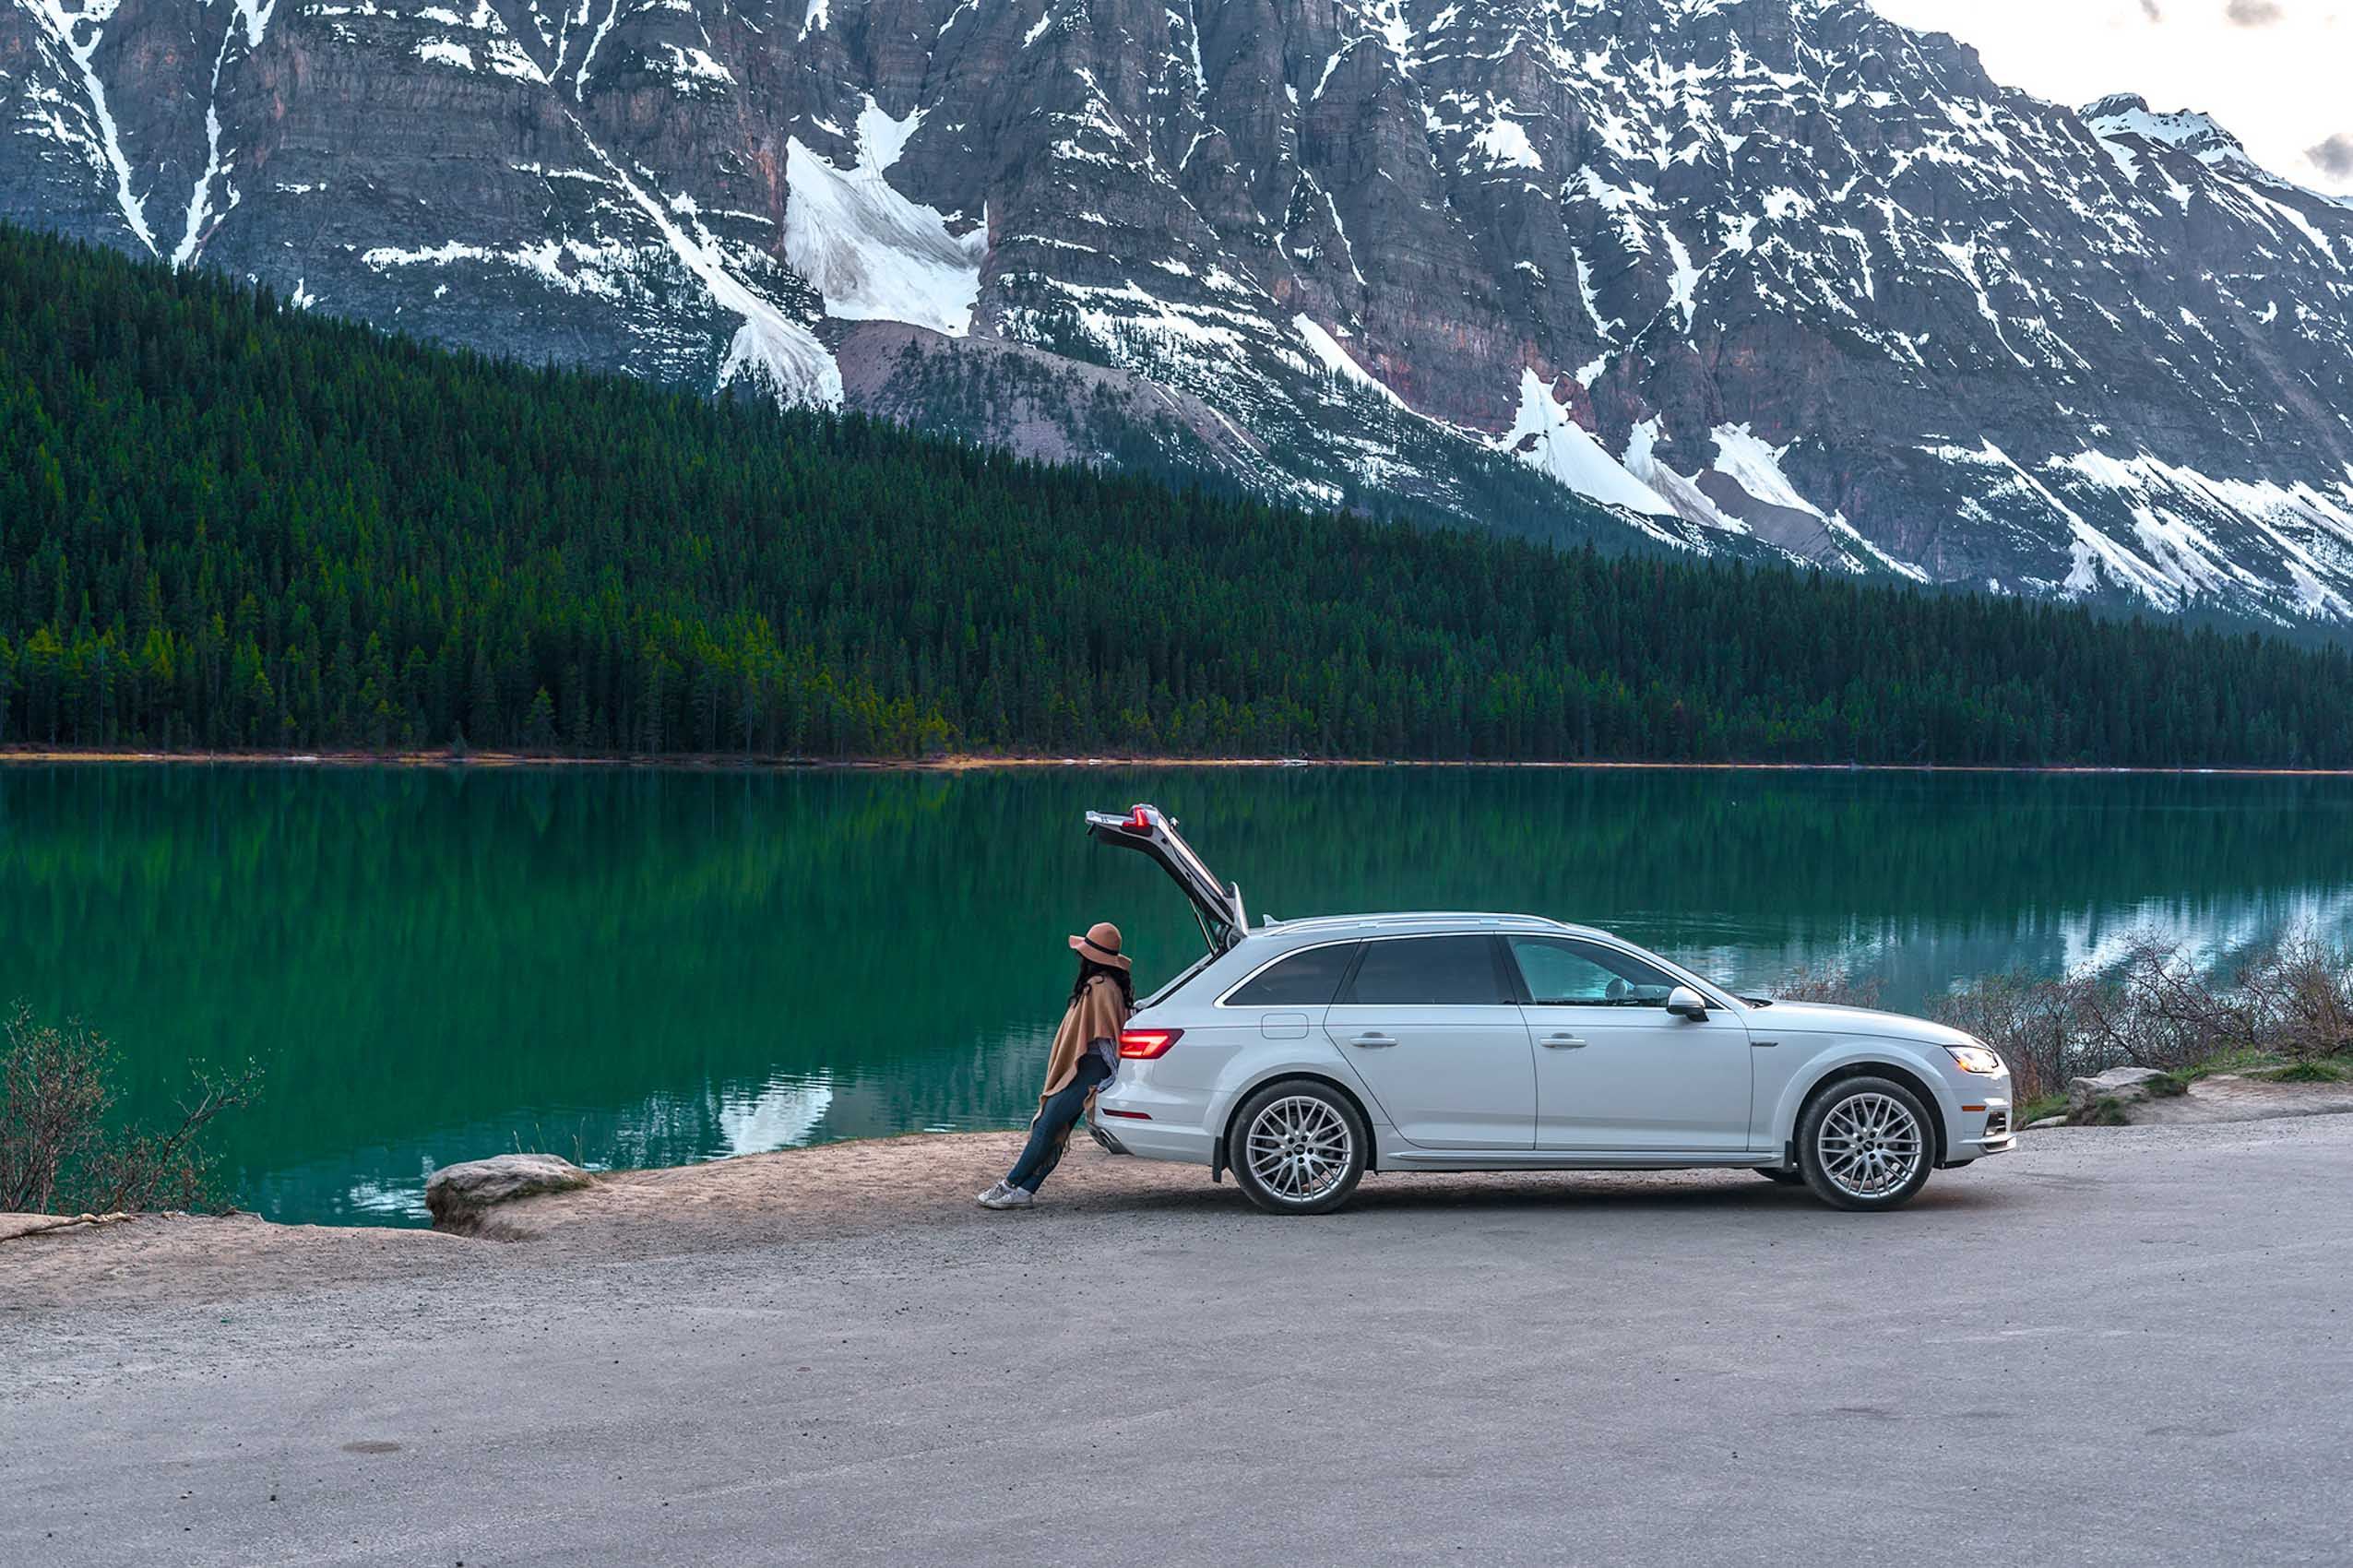 Audi All Road Audi Canada Karl Lee Photography Alberta Canada